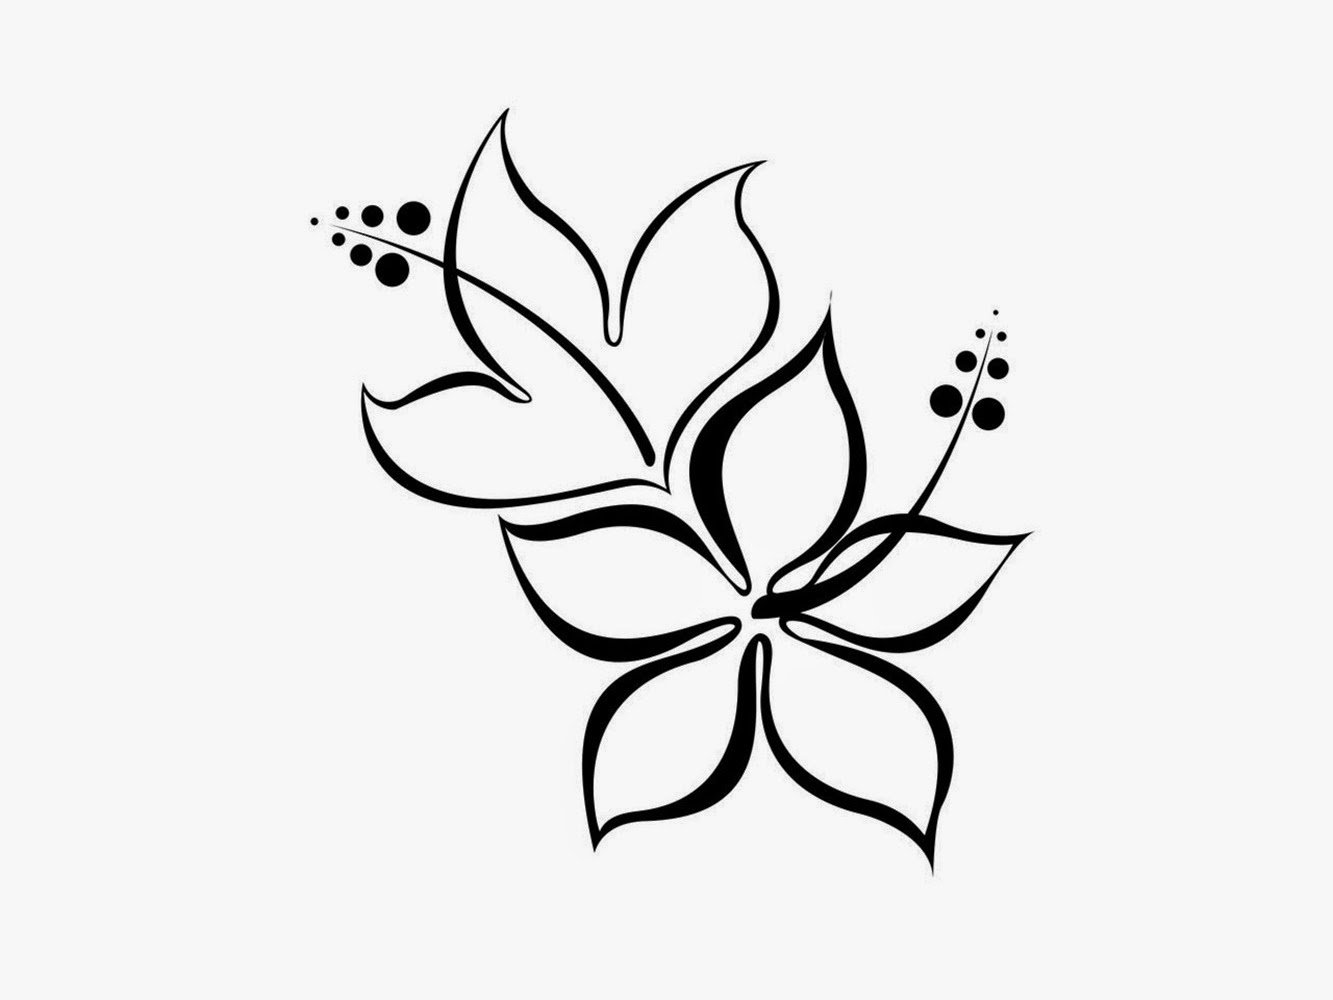 Black and white flower design many flowers black and white flower design flowers black and white mightylinksfo